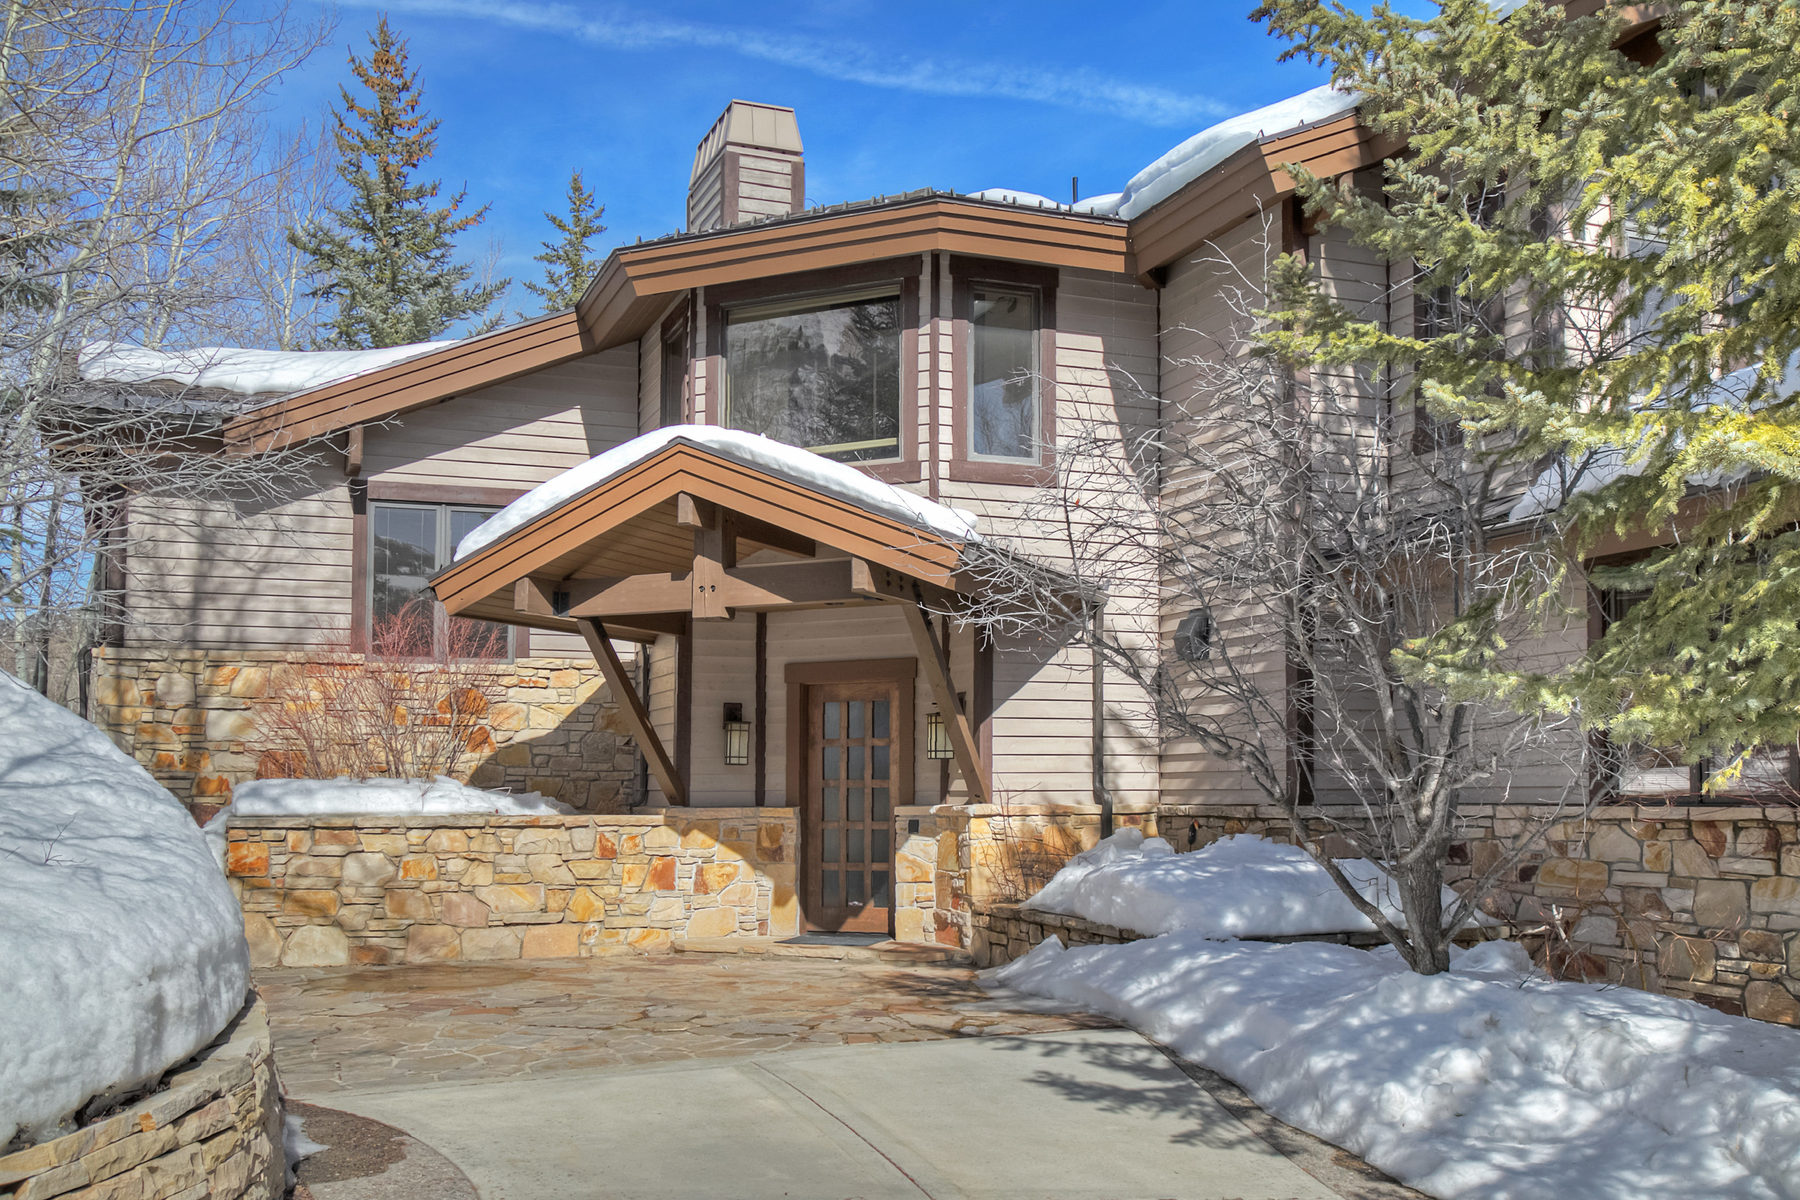 Single Family Home for Sale at Perfect Combination of Outstanding Materials and Craftsmanship 2418 Iron Mountain Dr Park City, Utah, 84060 United States